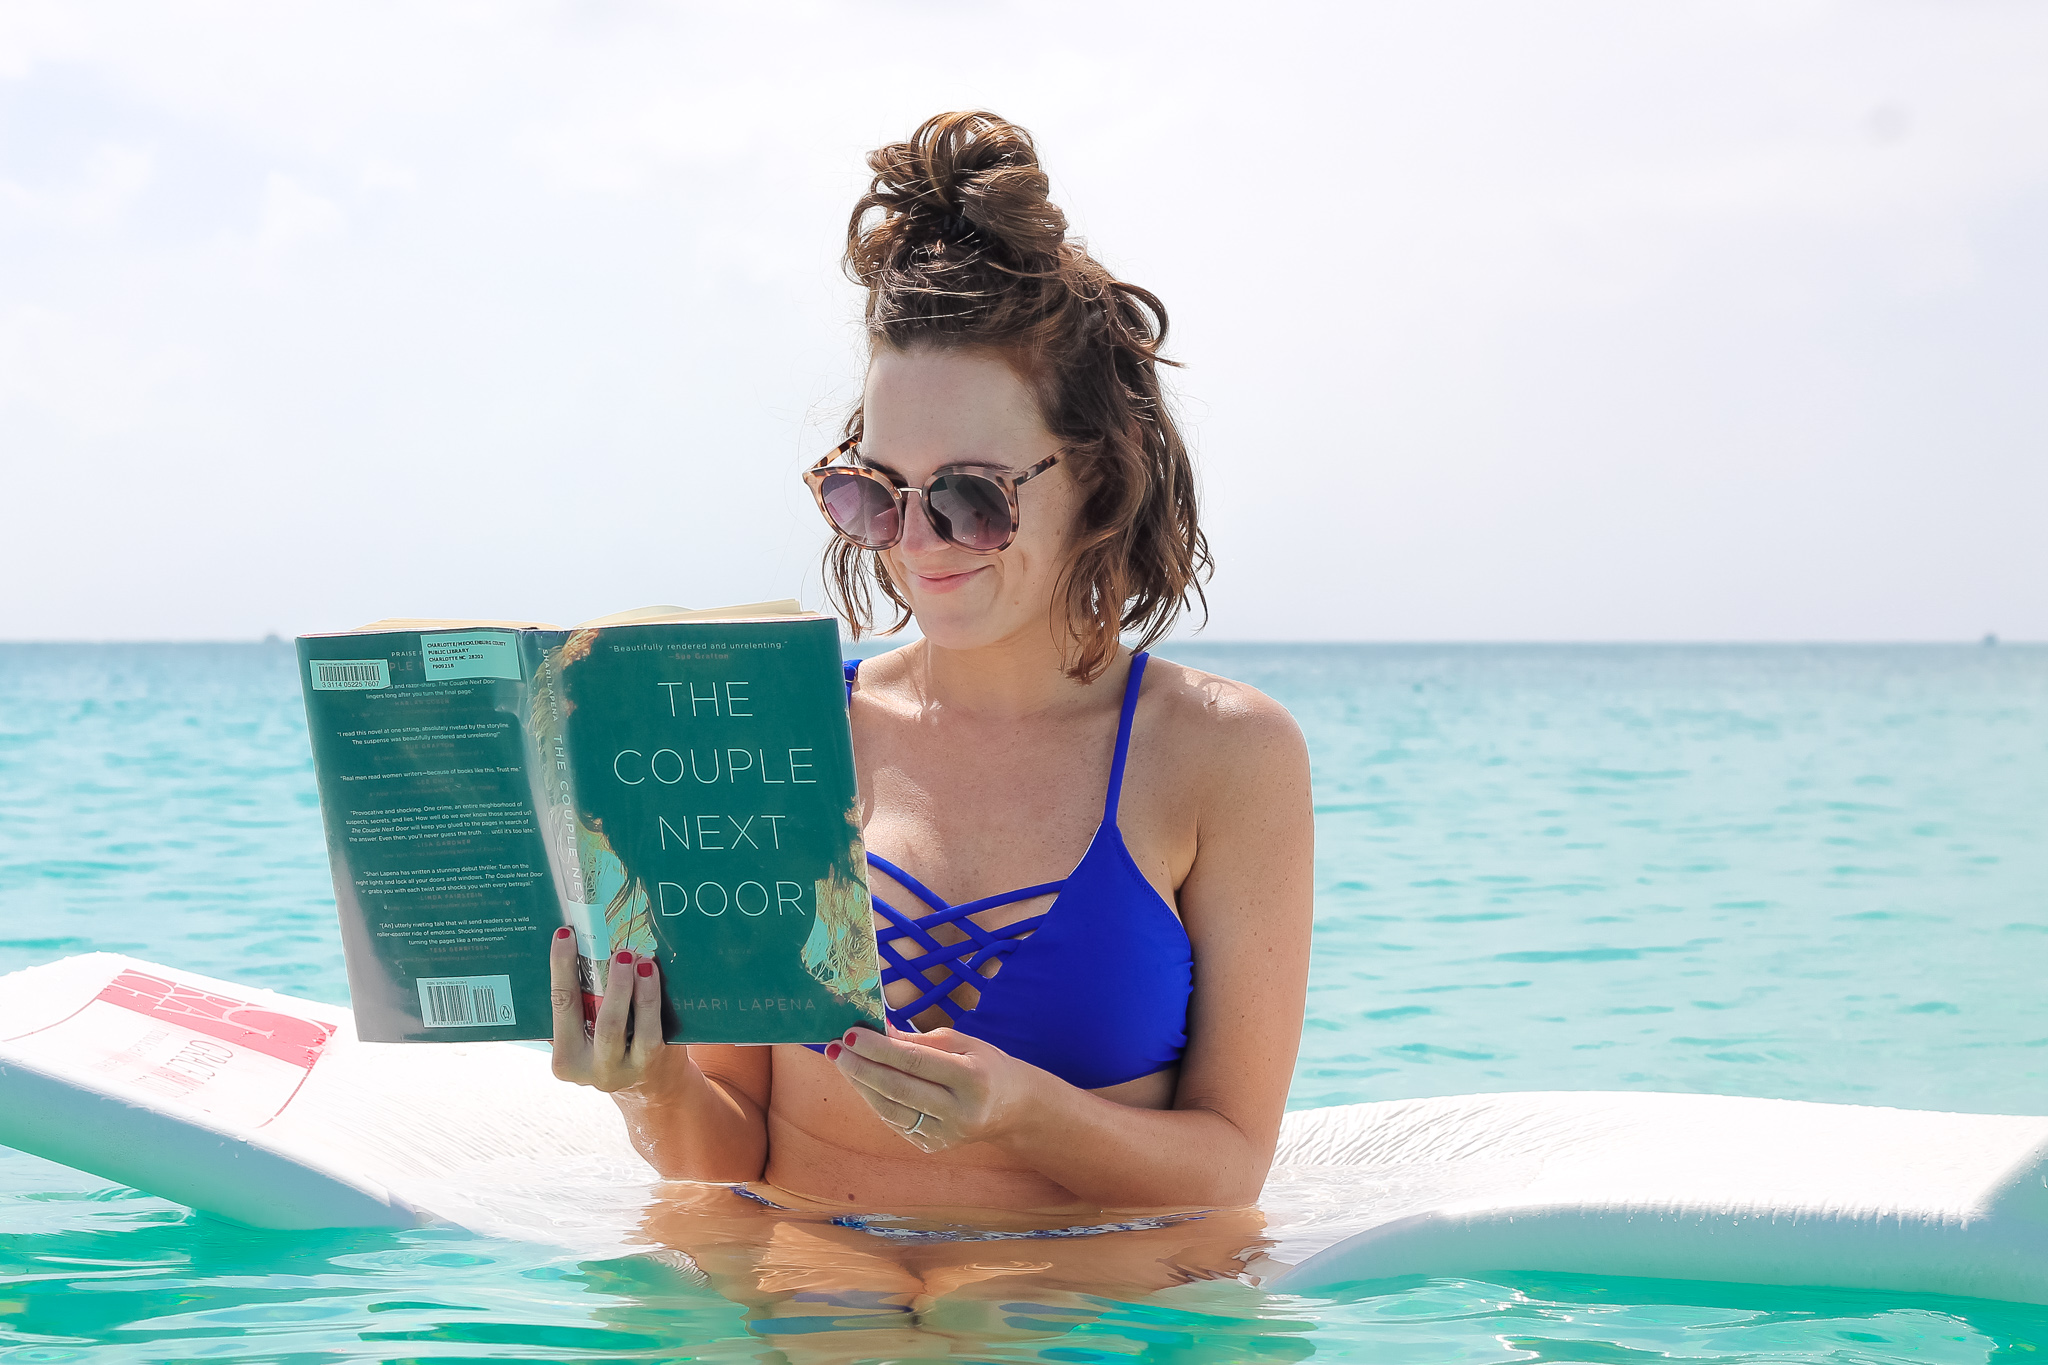 reading on beach Turks & Caicos